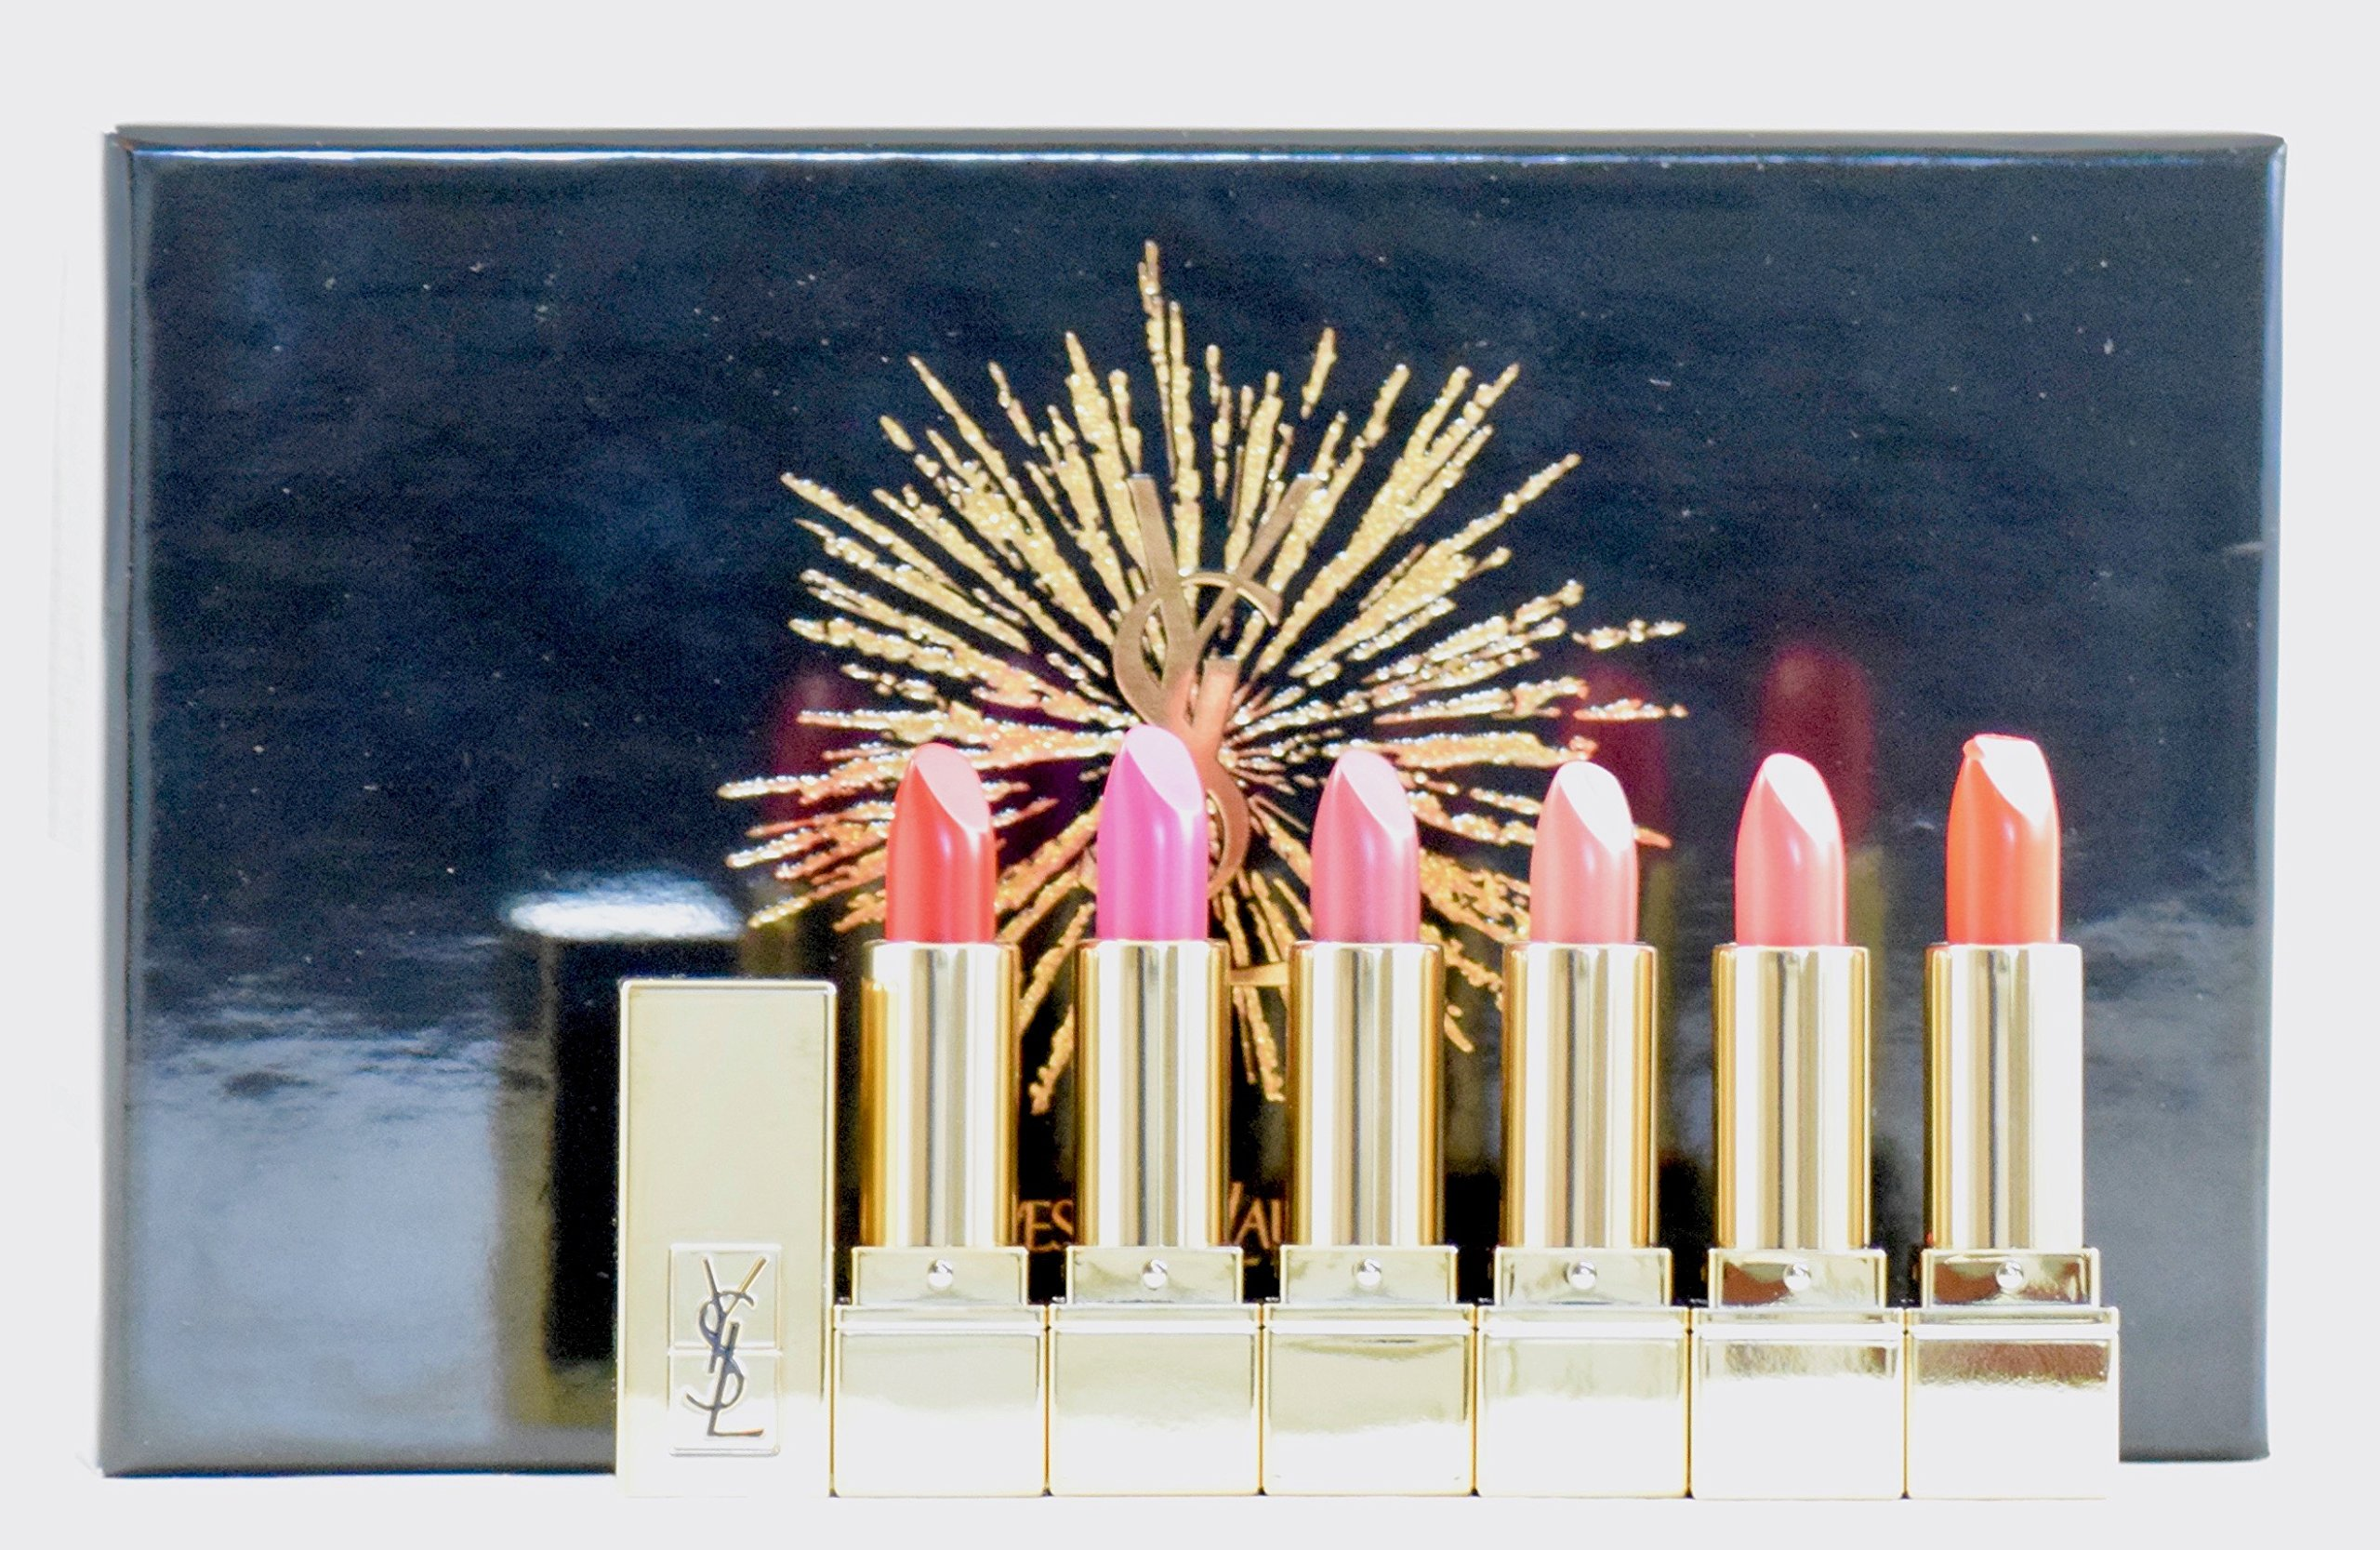 Yves Saint Laurent Rouge Pur Couture Mini Lipstick Collection 2017 - YSL 6 pc Holiday Set